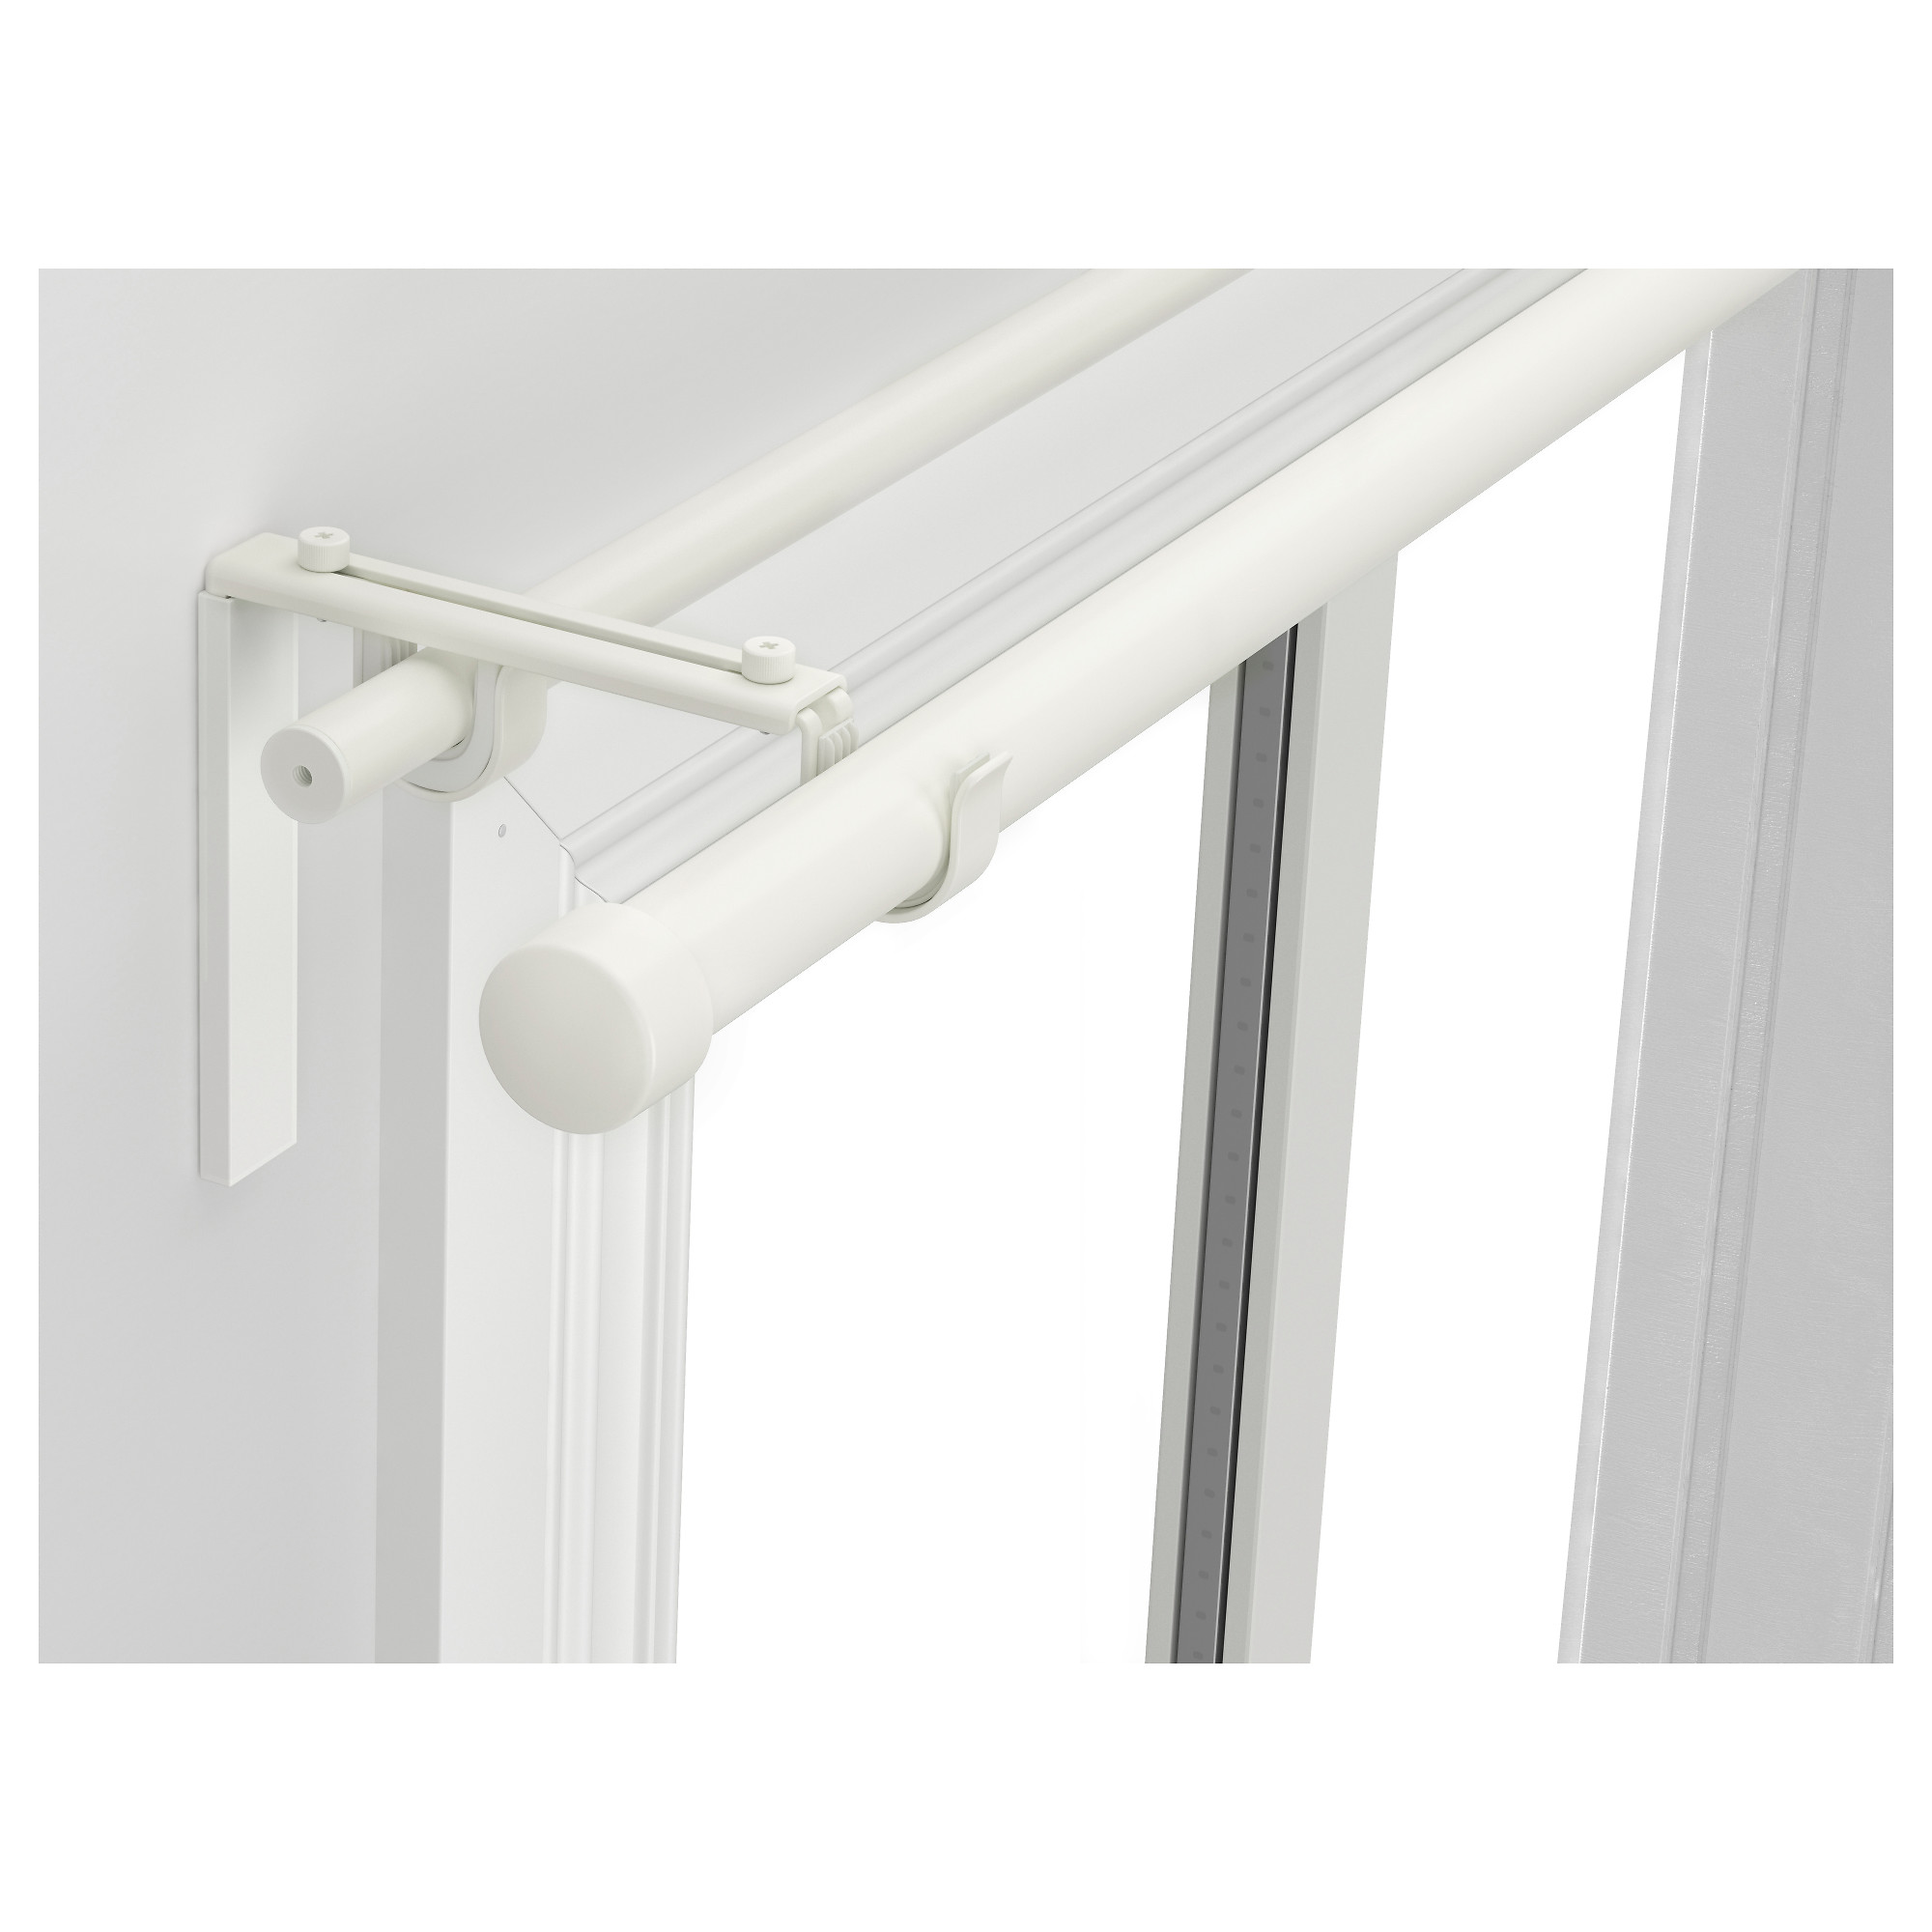 Superb RÄCKA / HUGAD Double Curtain Rod Combination   IKEA